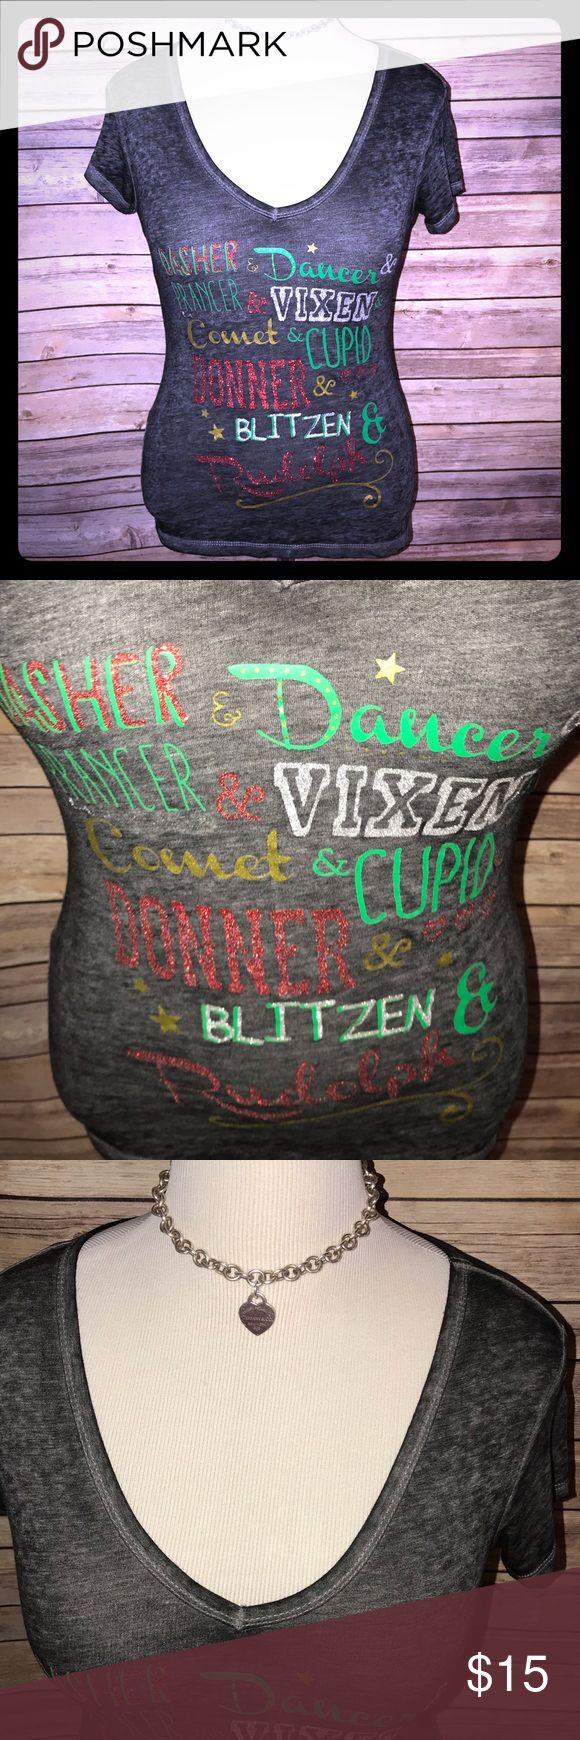 Glittery Festive Holiday V Neck Tee On Dasher and Dancer and Prancer and Vixen! Super cute and festive holiday tee with all of your favorite reindeer names in sparkly Christmas colors. Very stretchy and soft in distressed charcoal shade (not see through). Excellent quality and condition. Check out my other listings to bundle and save! Rocker Girl Tops Tees - Short Sleeve